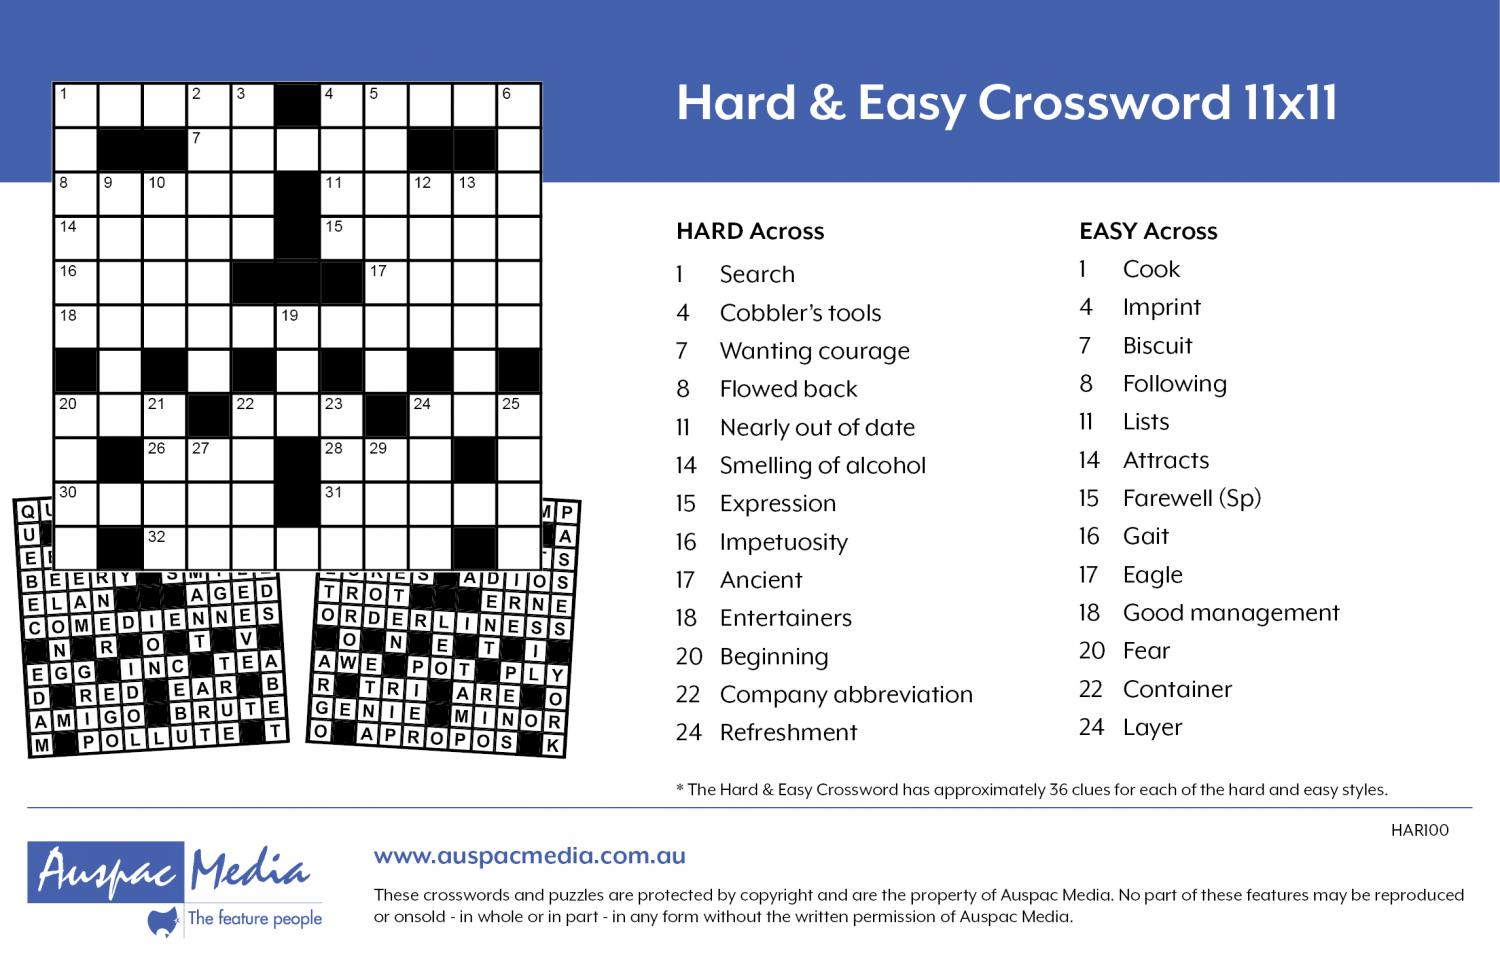 Find sex appeal crossword clue for friendship